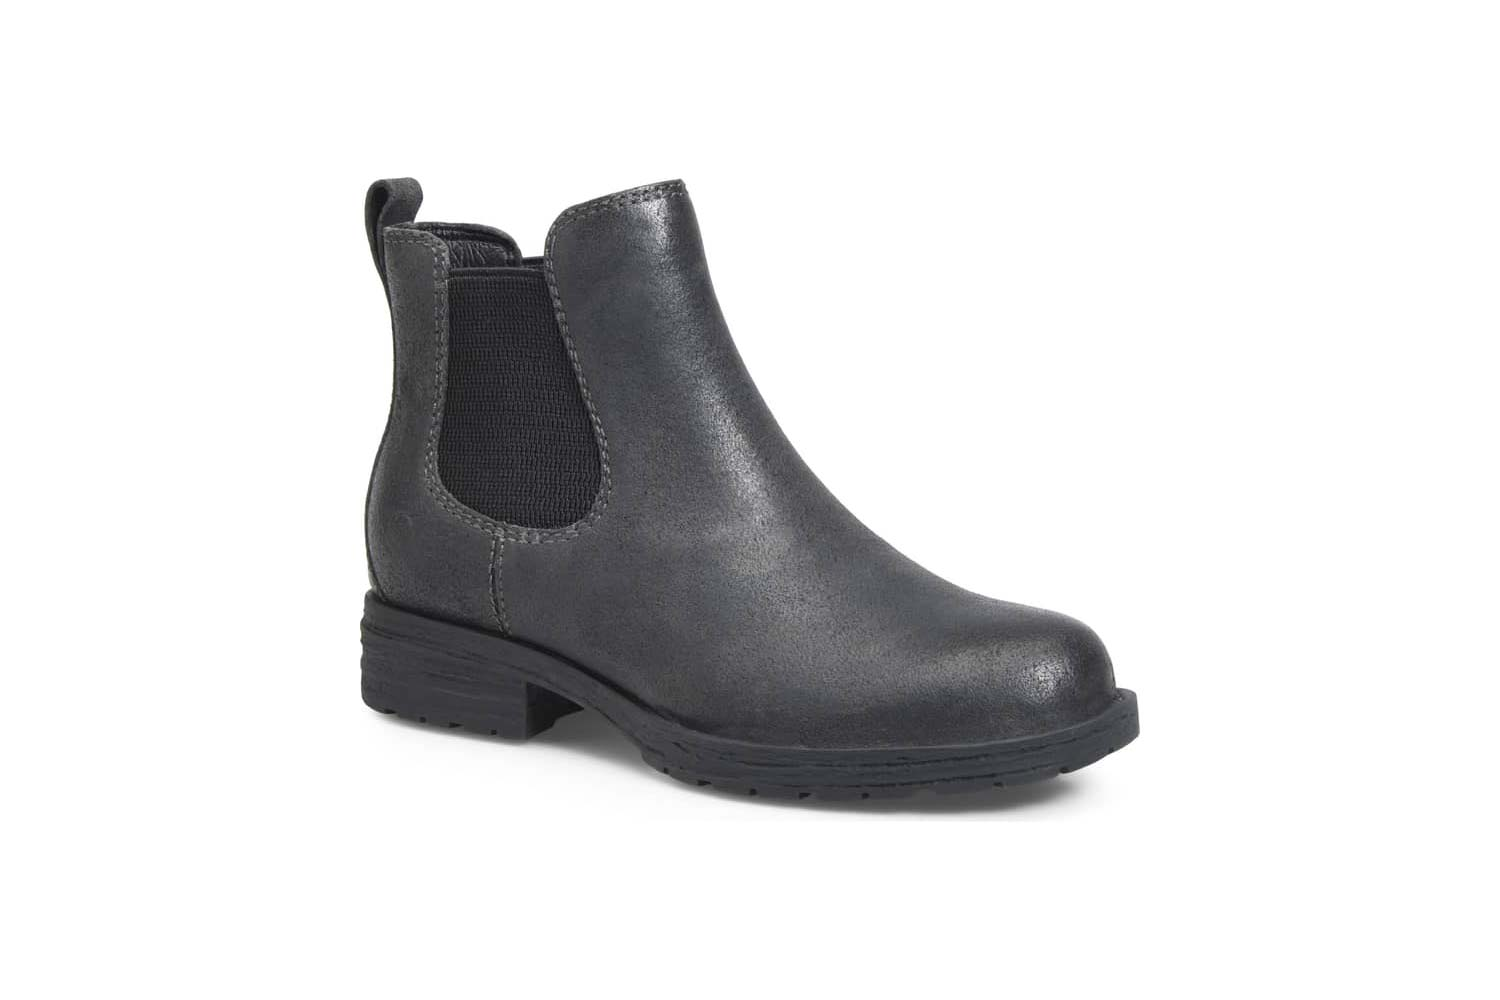 Cove Waterproof Leather Chelsea Boot